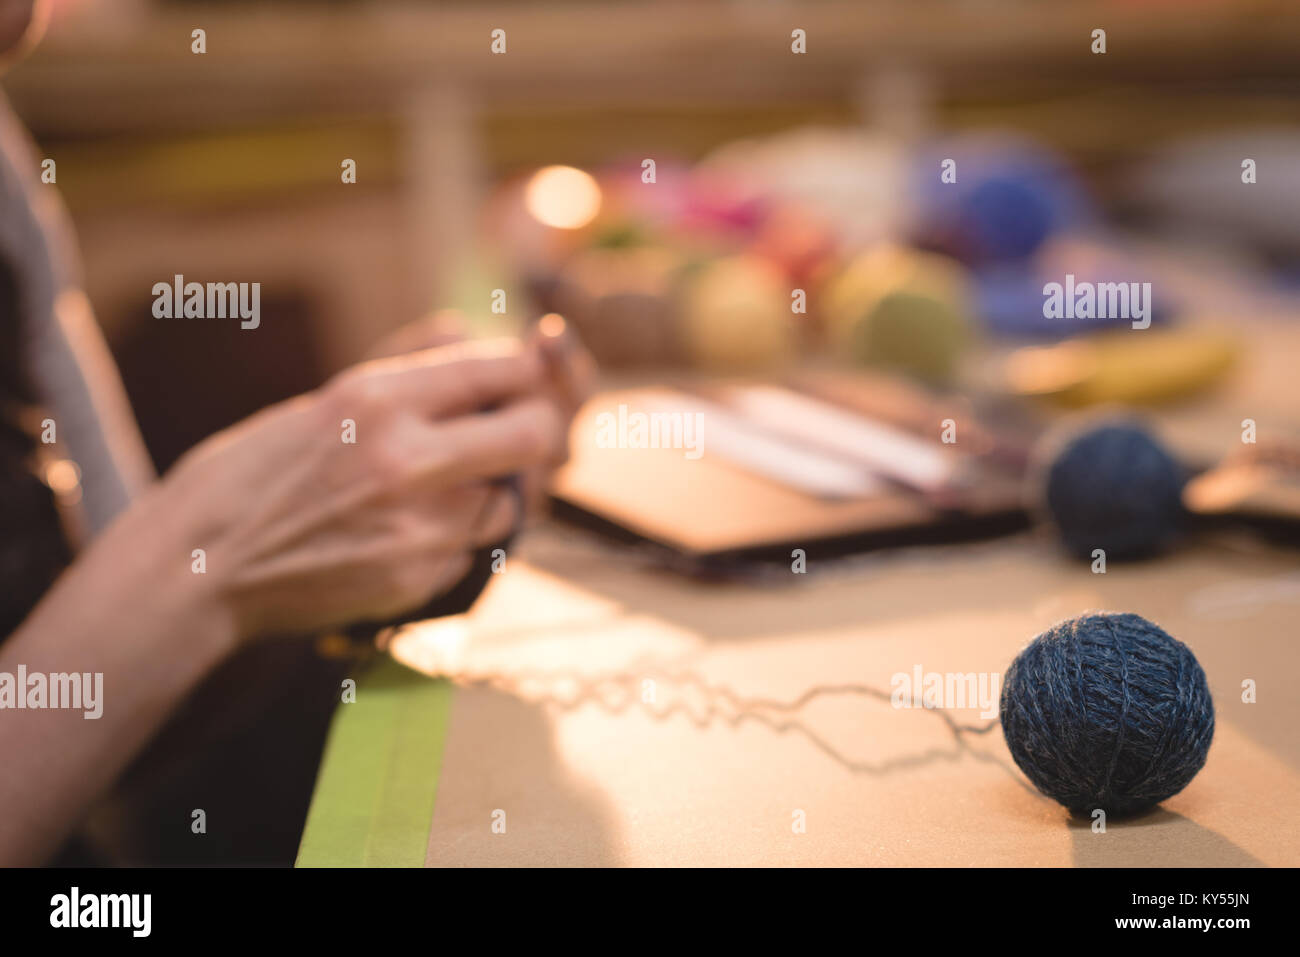 Woman knitting wool at tailor shop - Stock Image